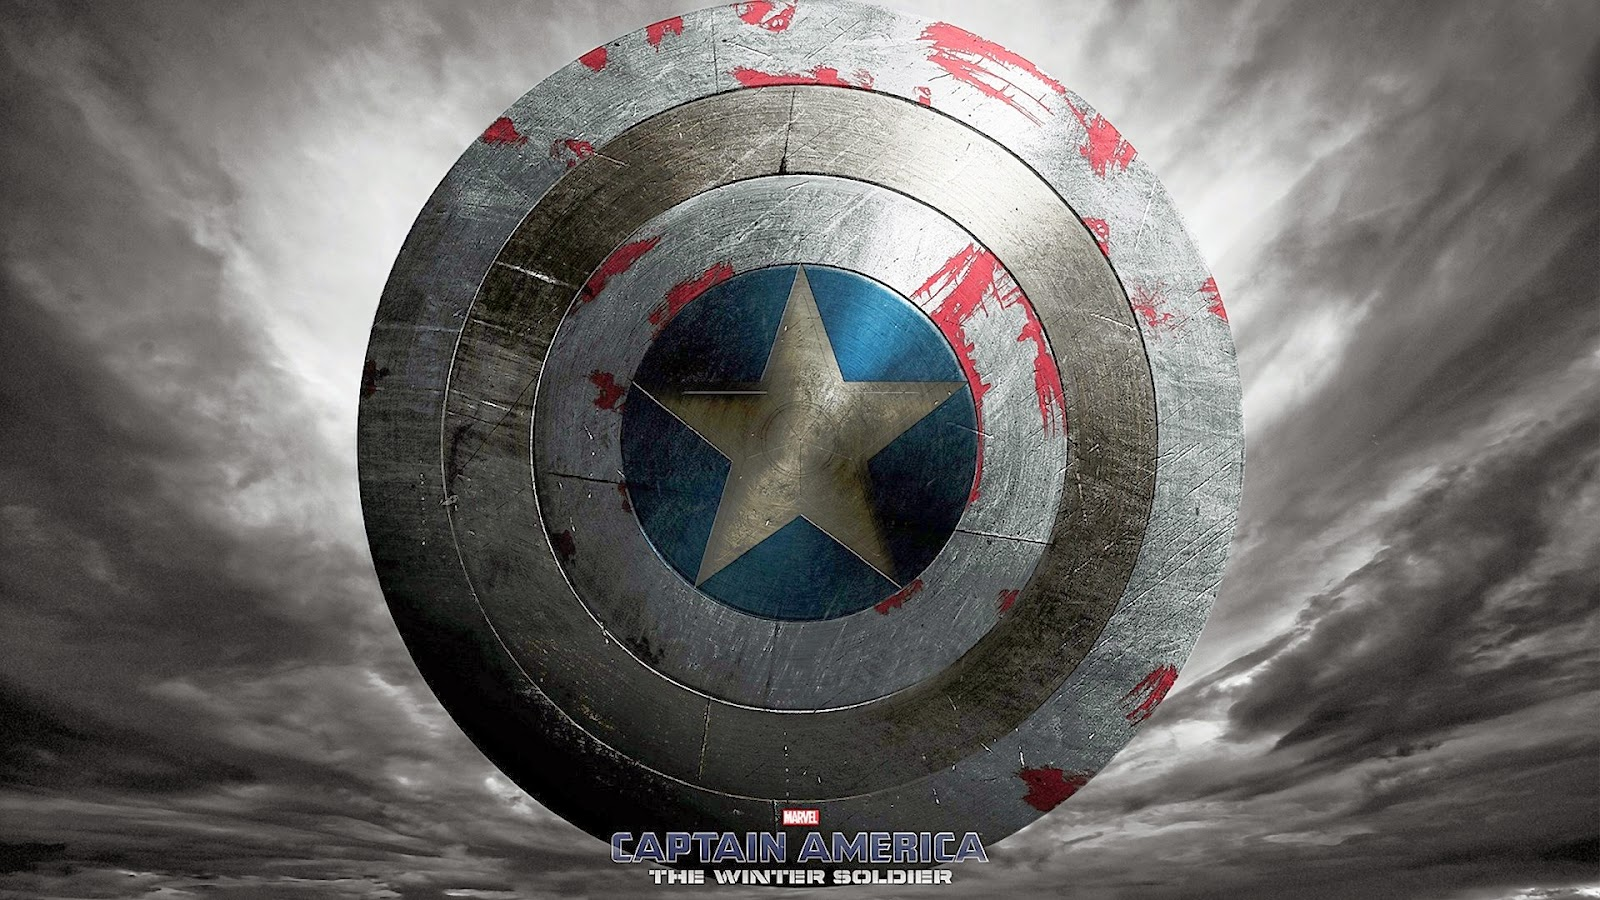 captain-america-2-box-office